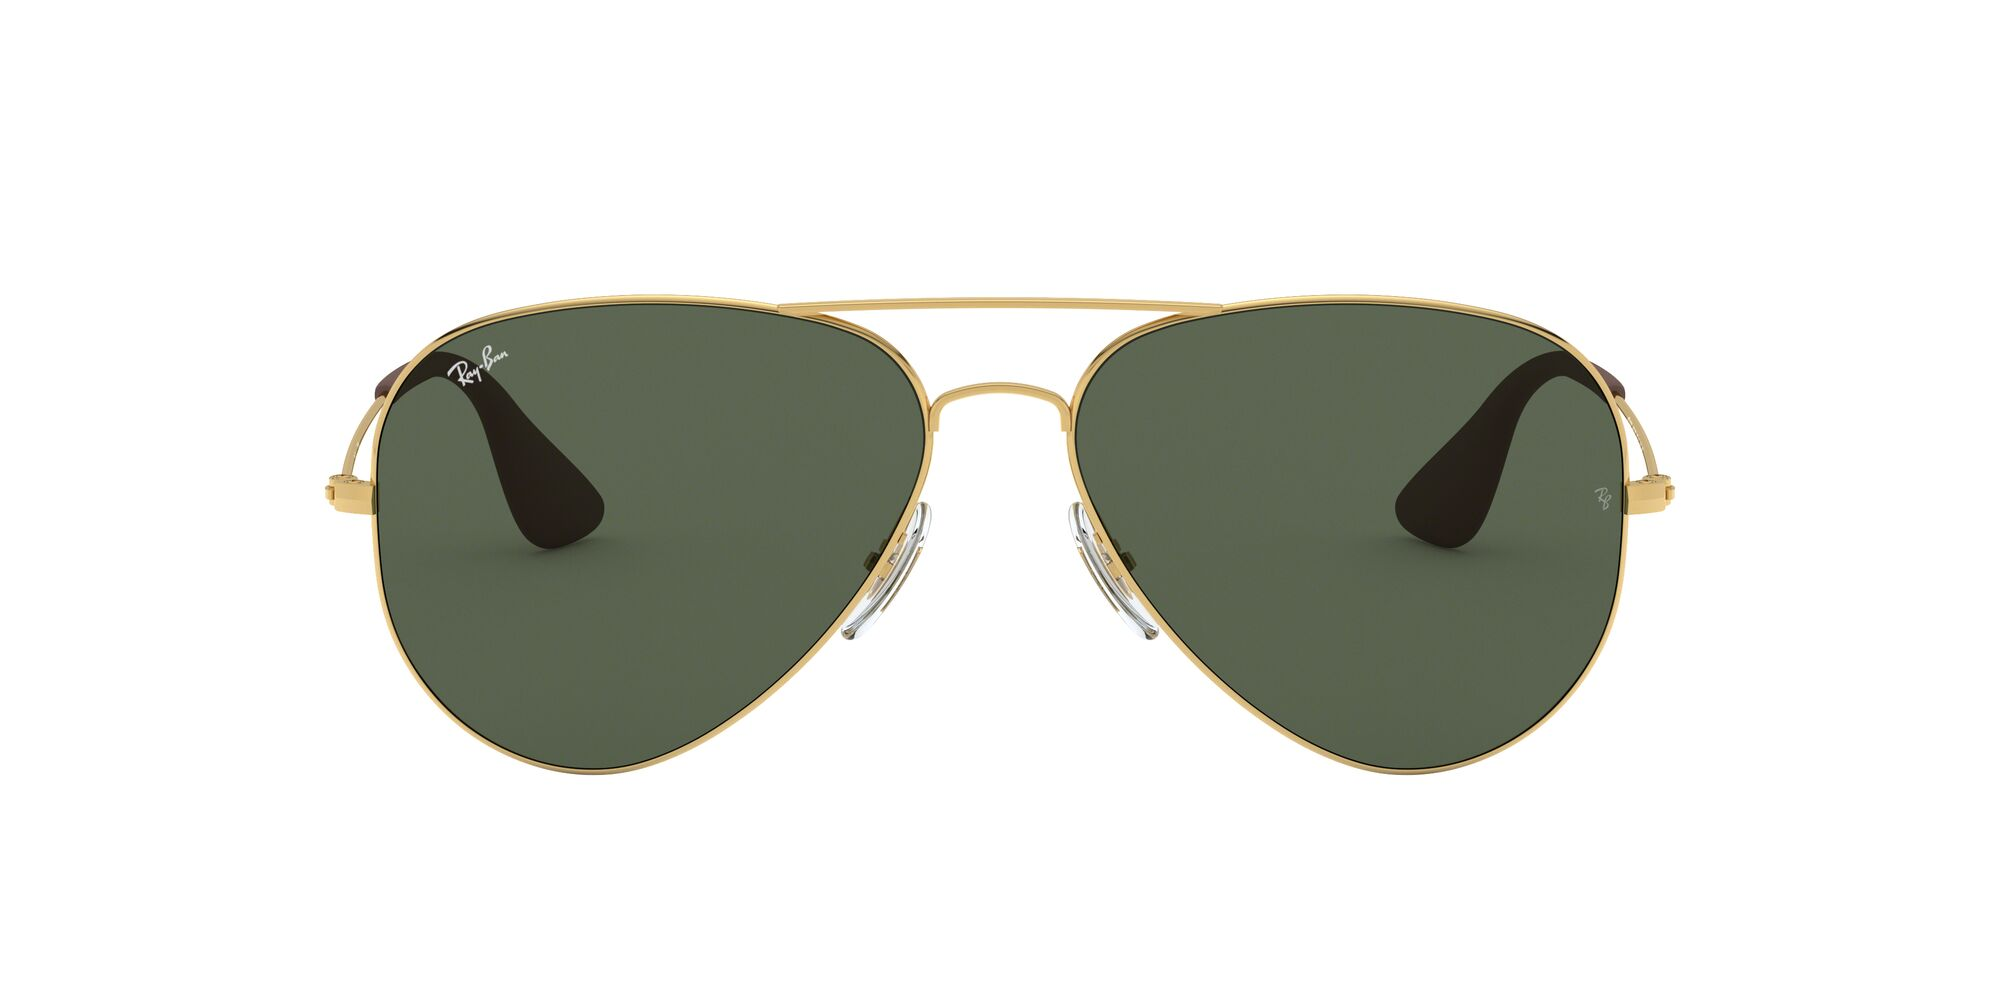 Front Ray-Ban Ray-Ban 0RB3558 001/71 58/14 Goud/Groen